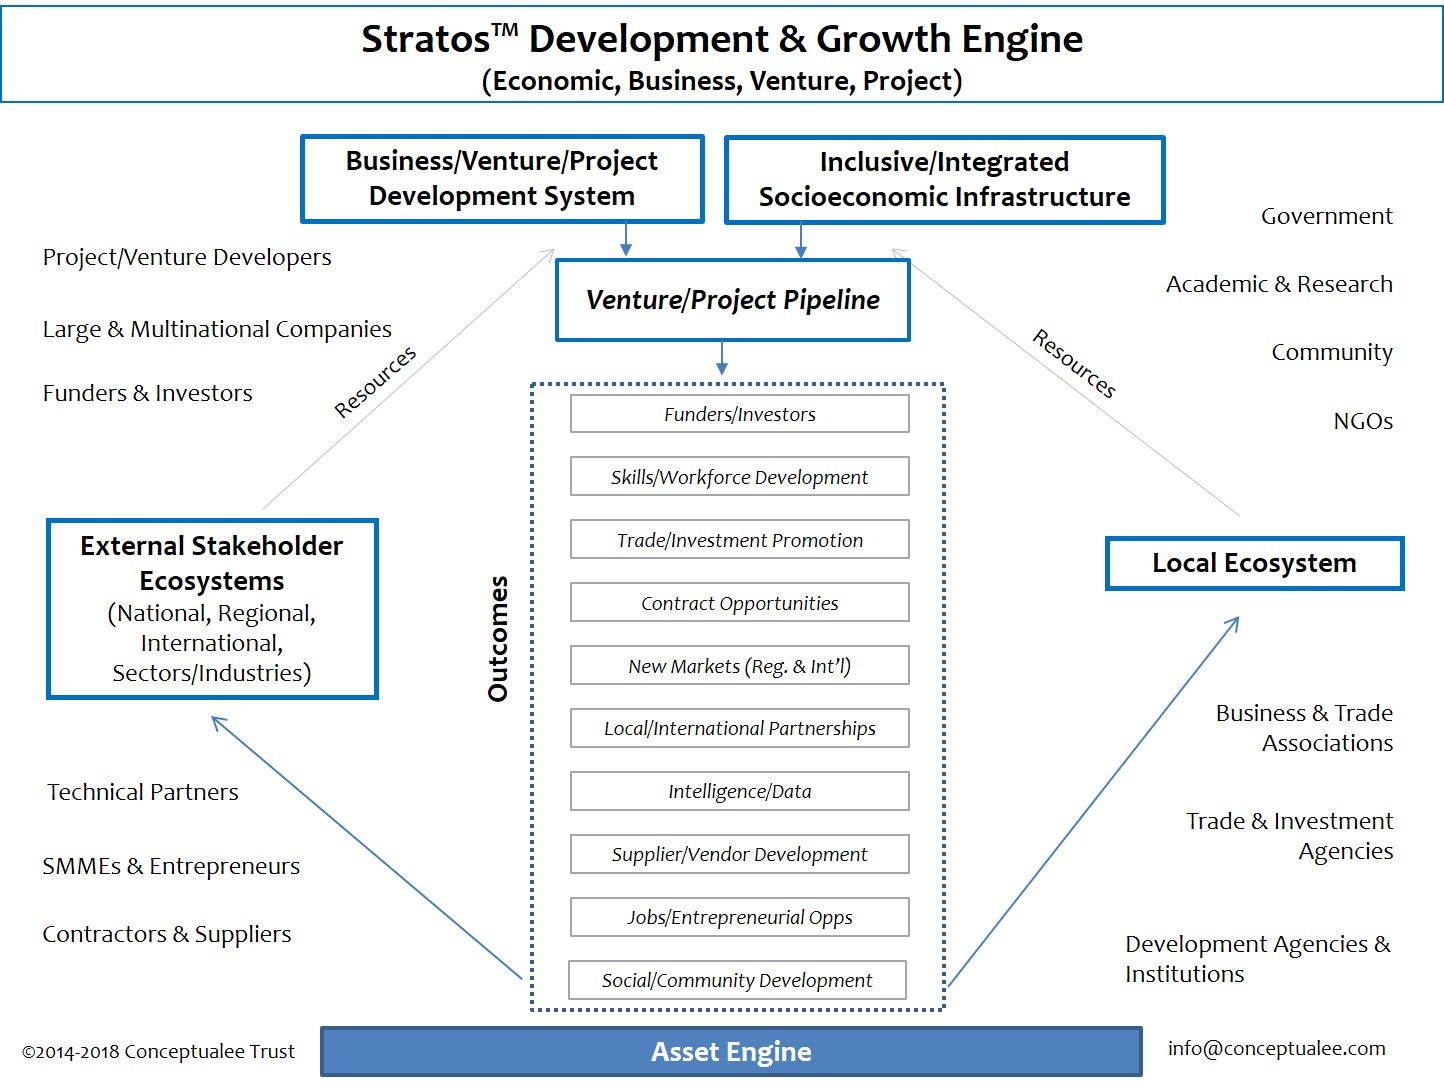 Stratos Development and Growth Engine™